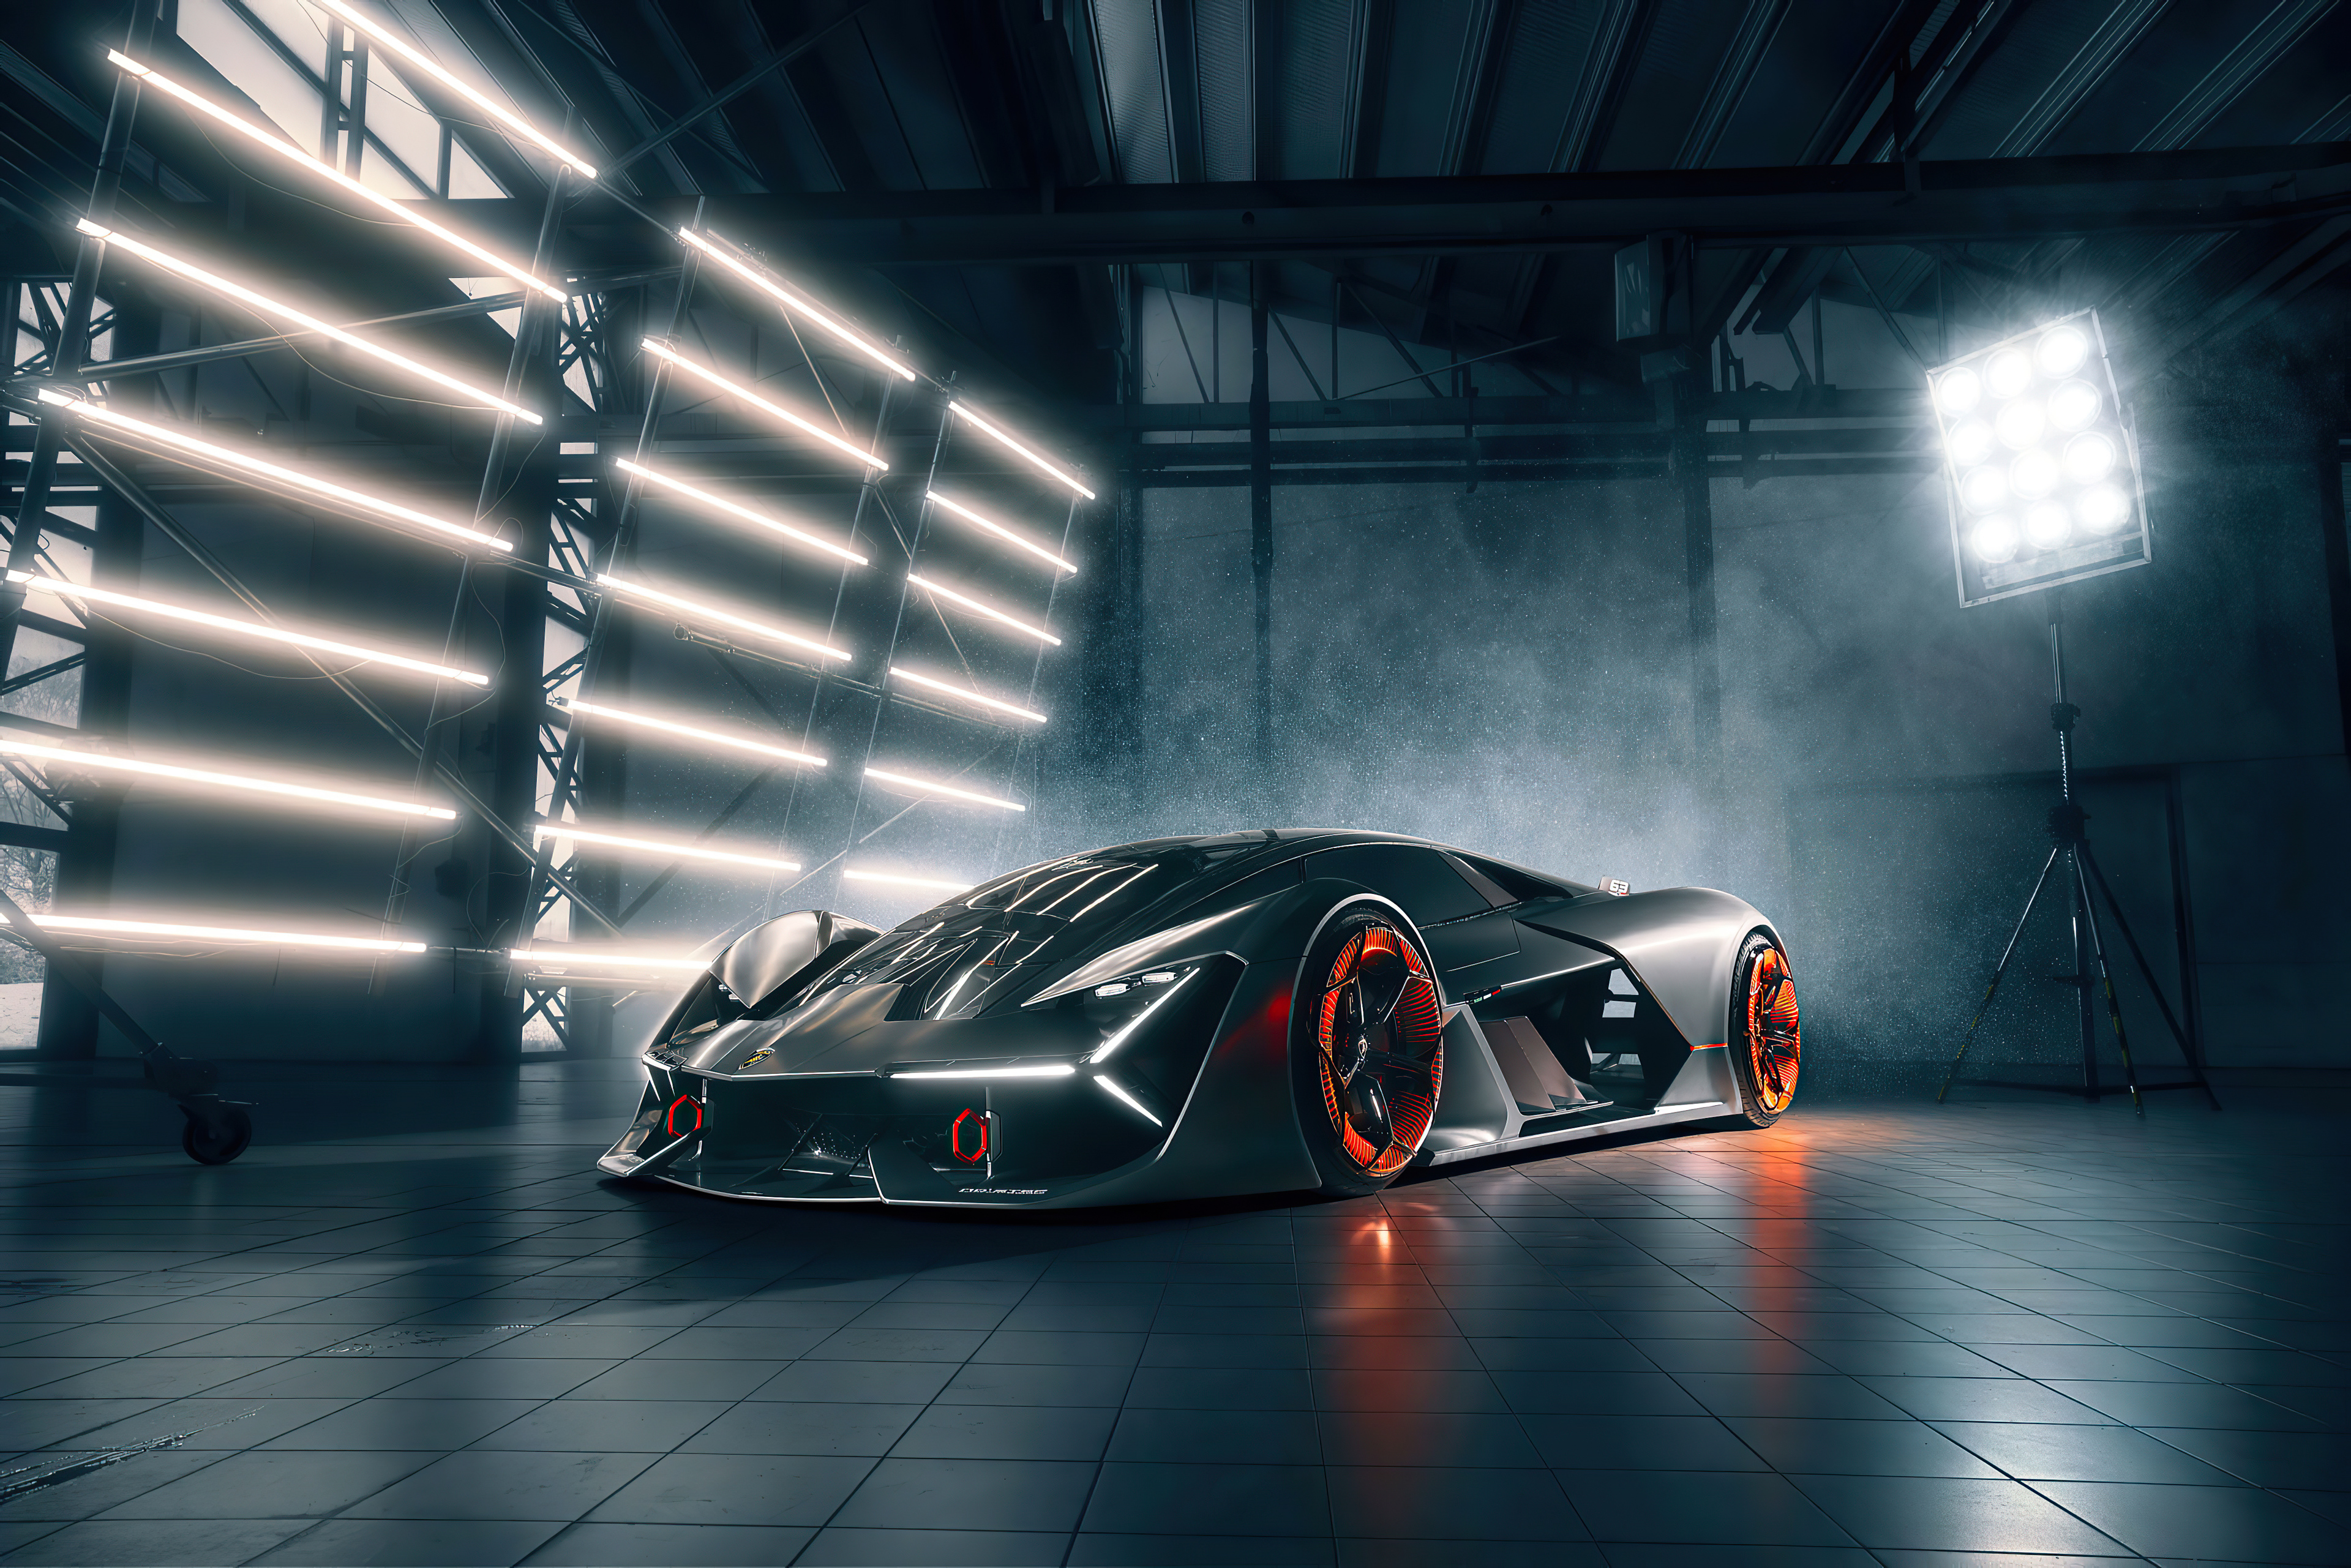 4k 2020 Lamborghini Terzo Millennio Hd Cars 4k Wallpapers Images Backgrounds Photos And Pictures